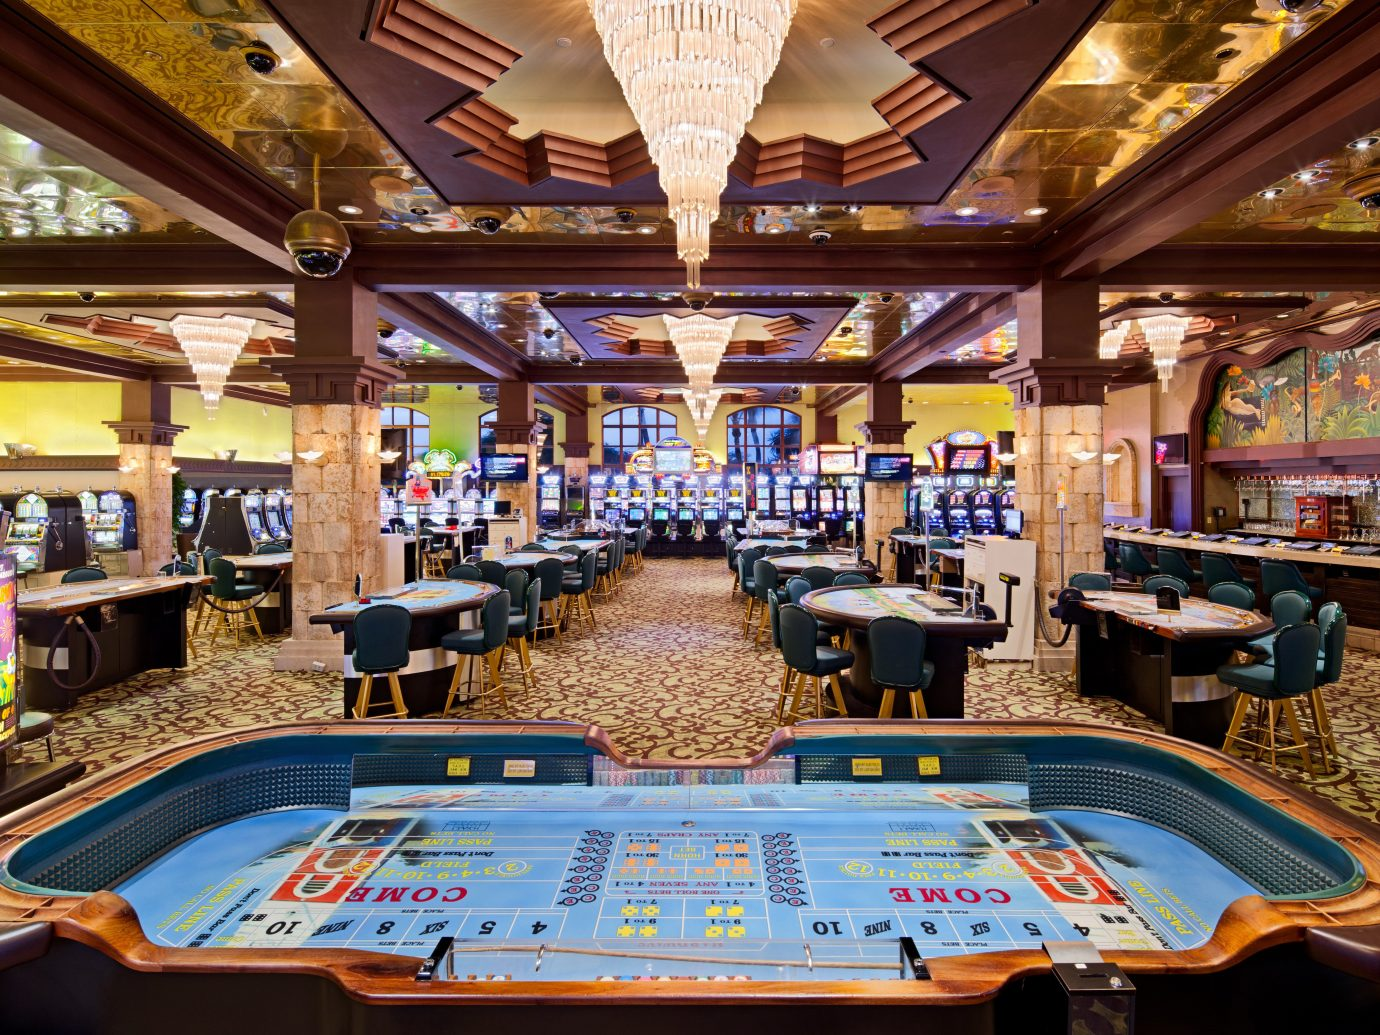 Aruba Beachfront caribbean Casino Classic Hotels Play Resort Tropical indoor ceiling recreation room building billiard room games several